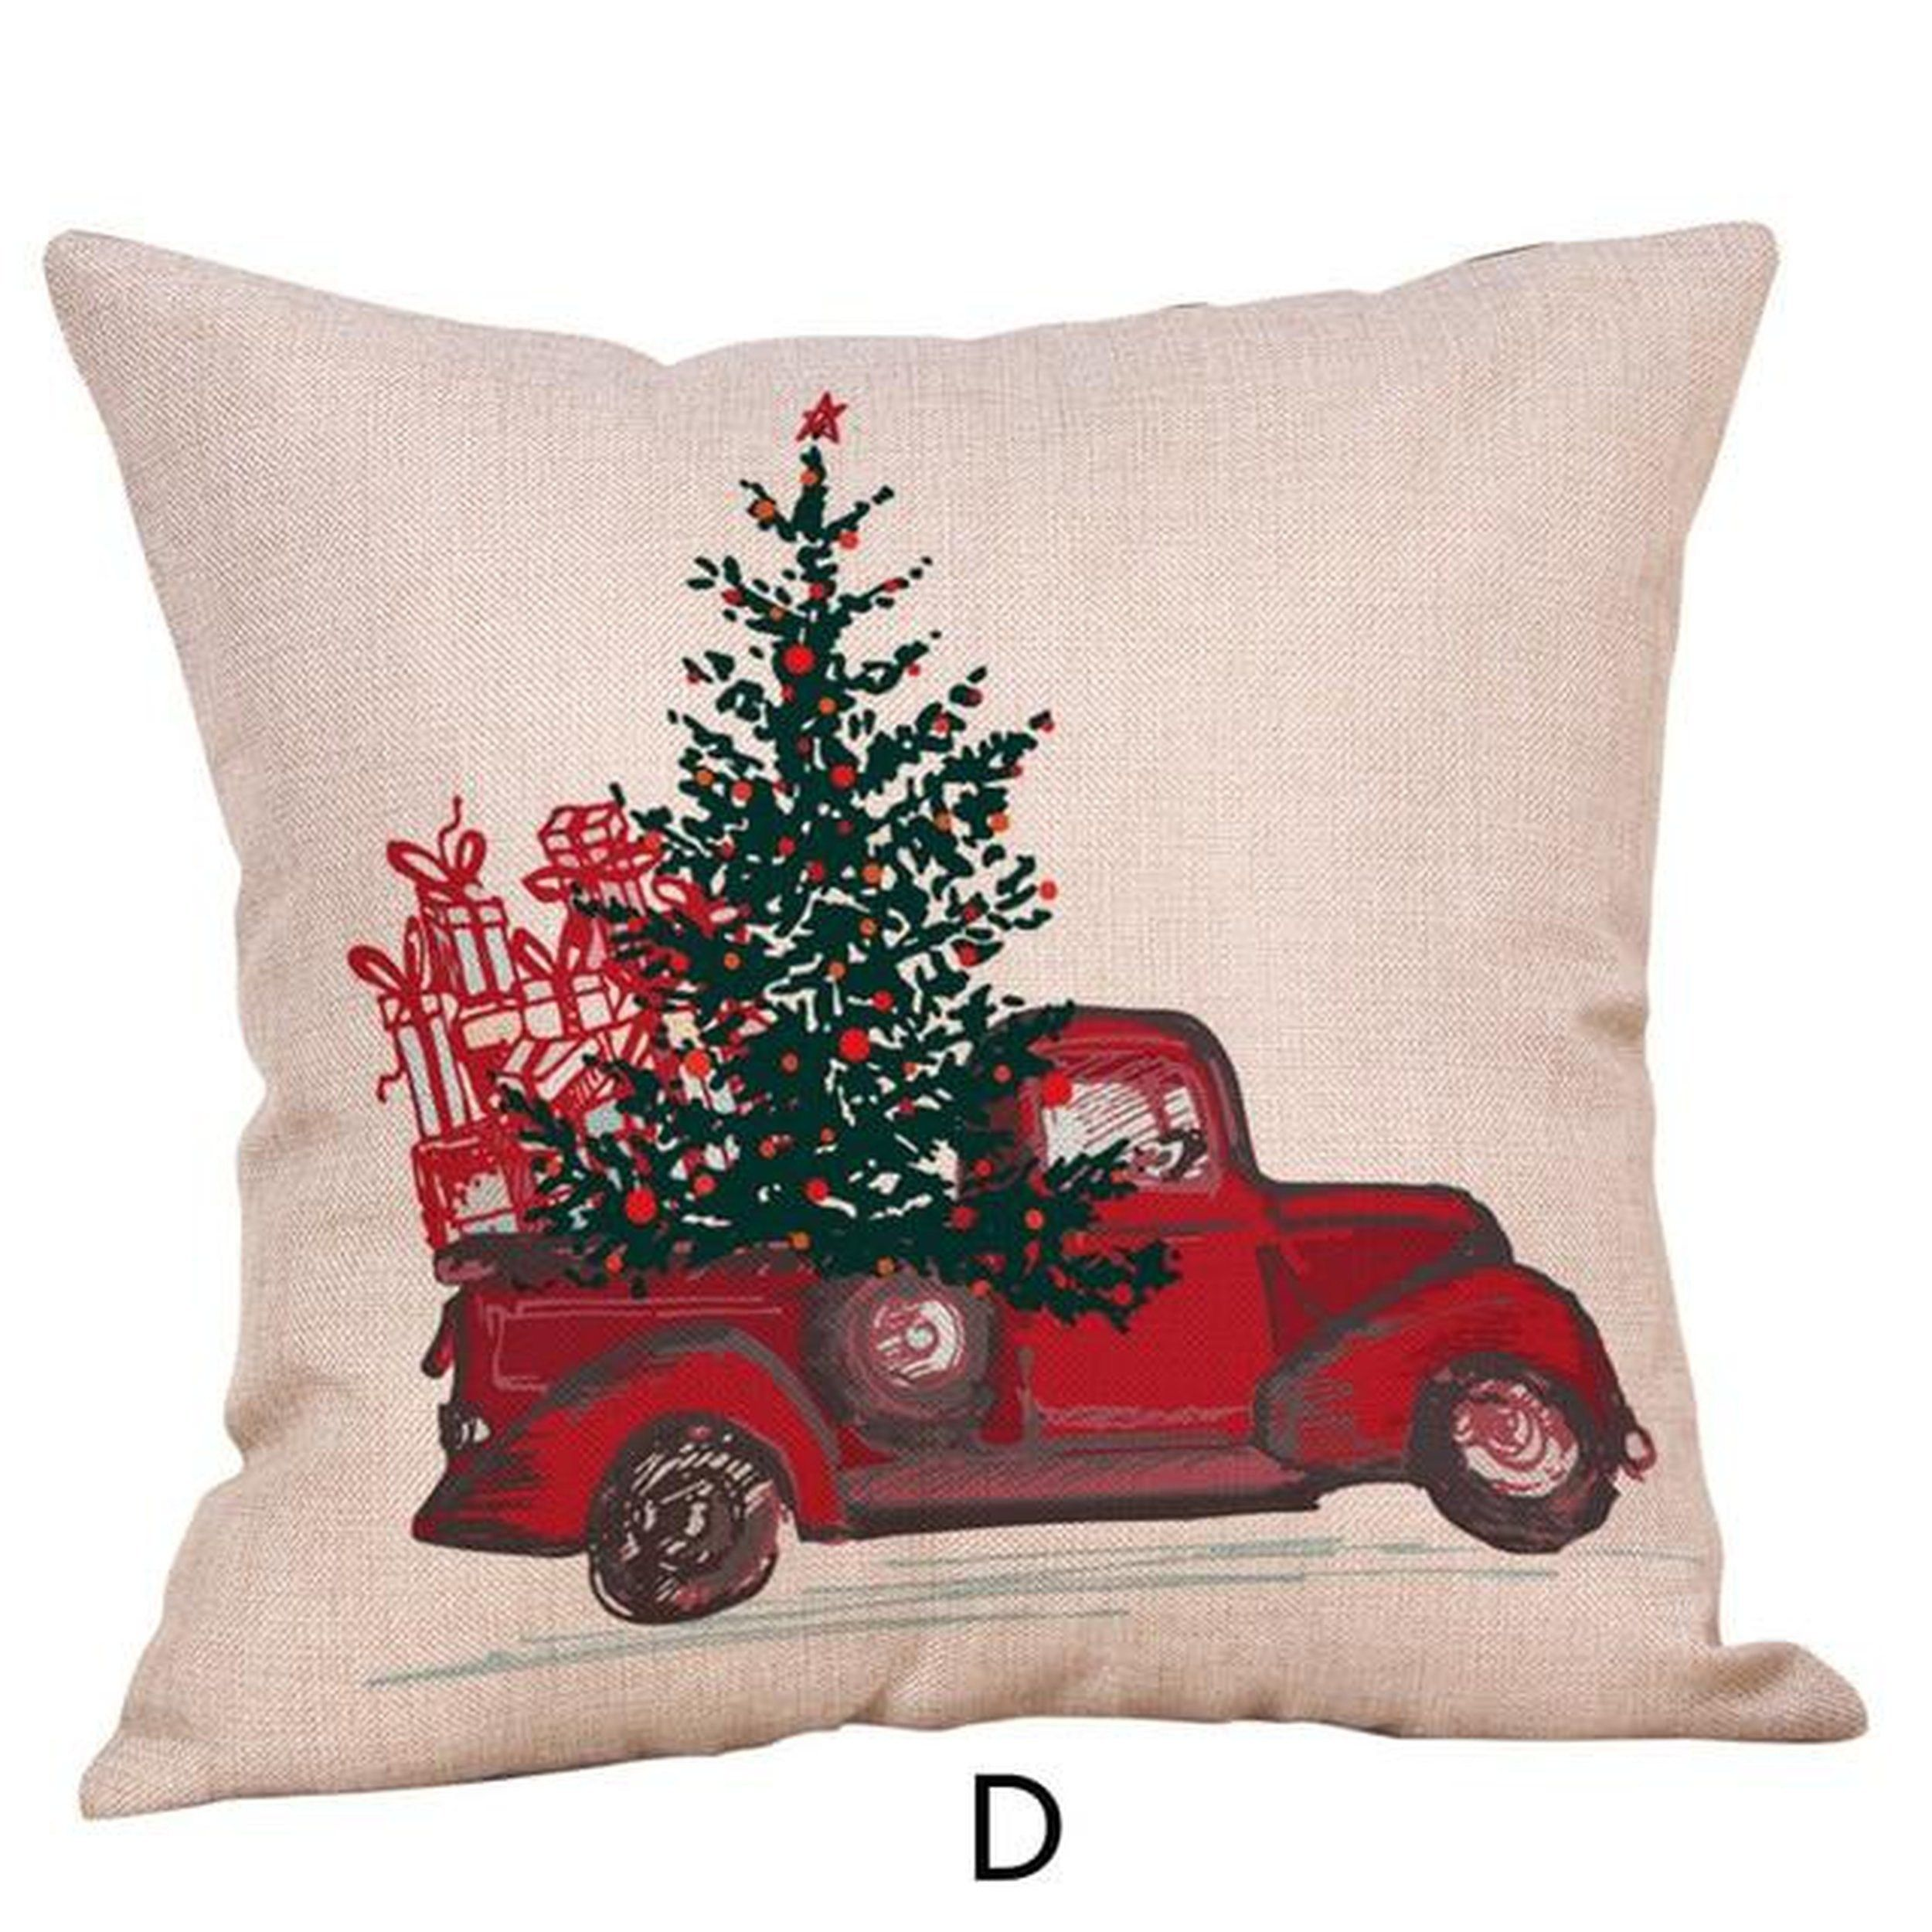 Merry Christmas Throw Pillow Case Vehicle Pillows Cover